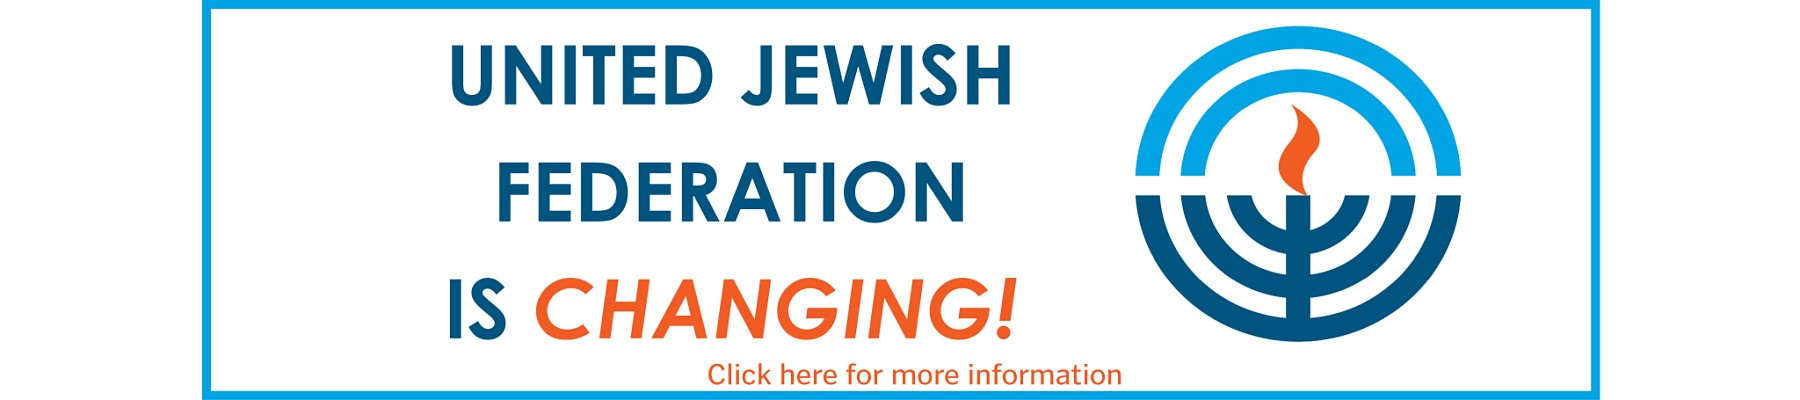 BANNER AD FOR UJF IS CHANGING_opt (5).jpg